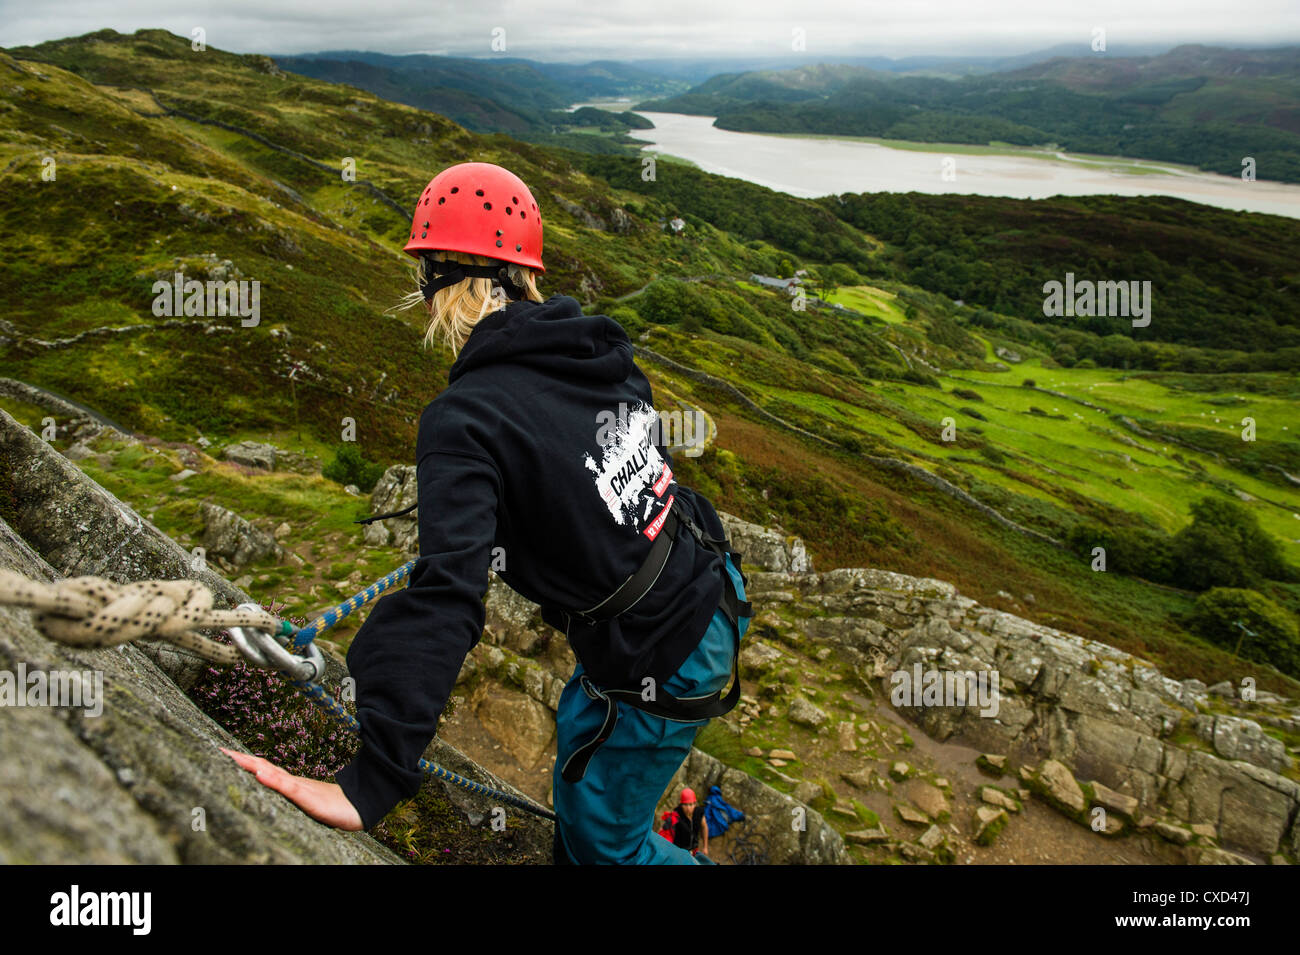 Rock Climbing in the Mawddach valley north wales: Teenagers taking part in 'The Challenge' - Outward bound - Stock Image